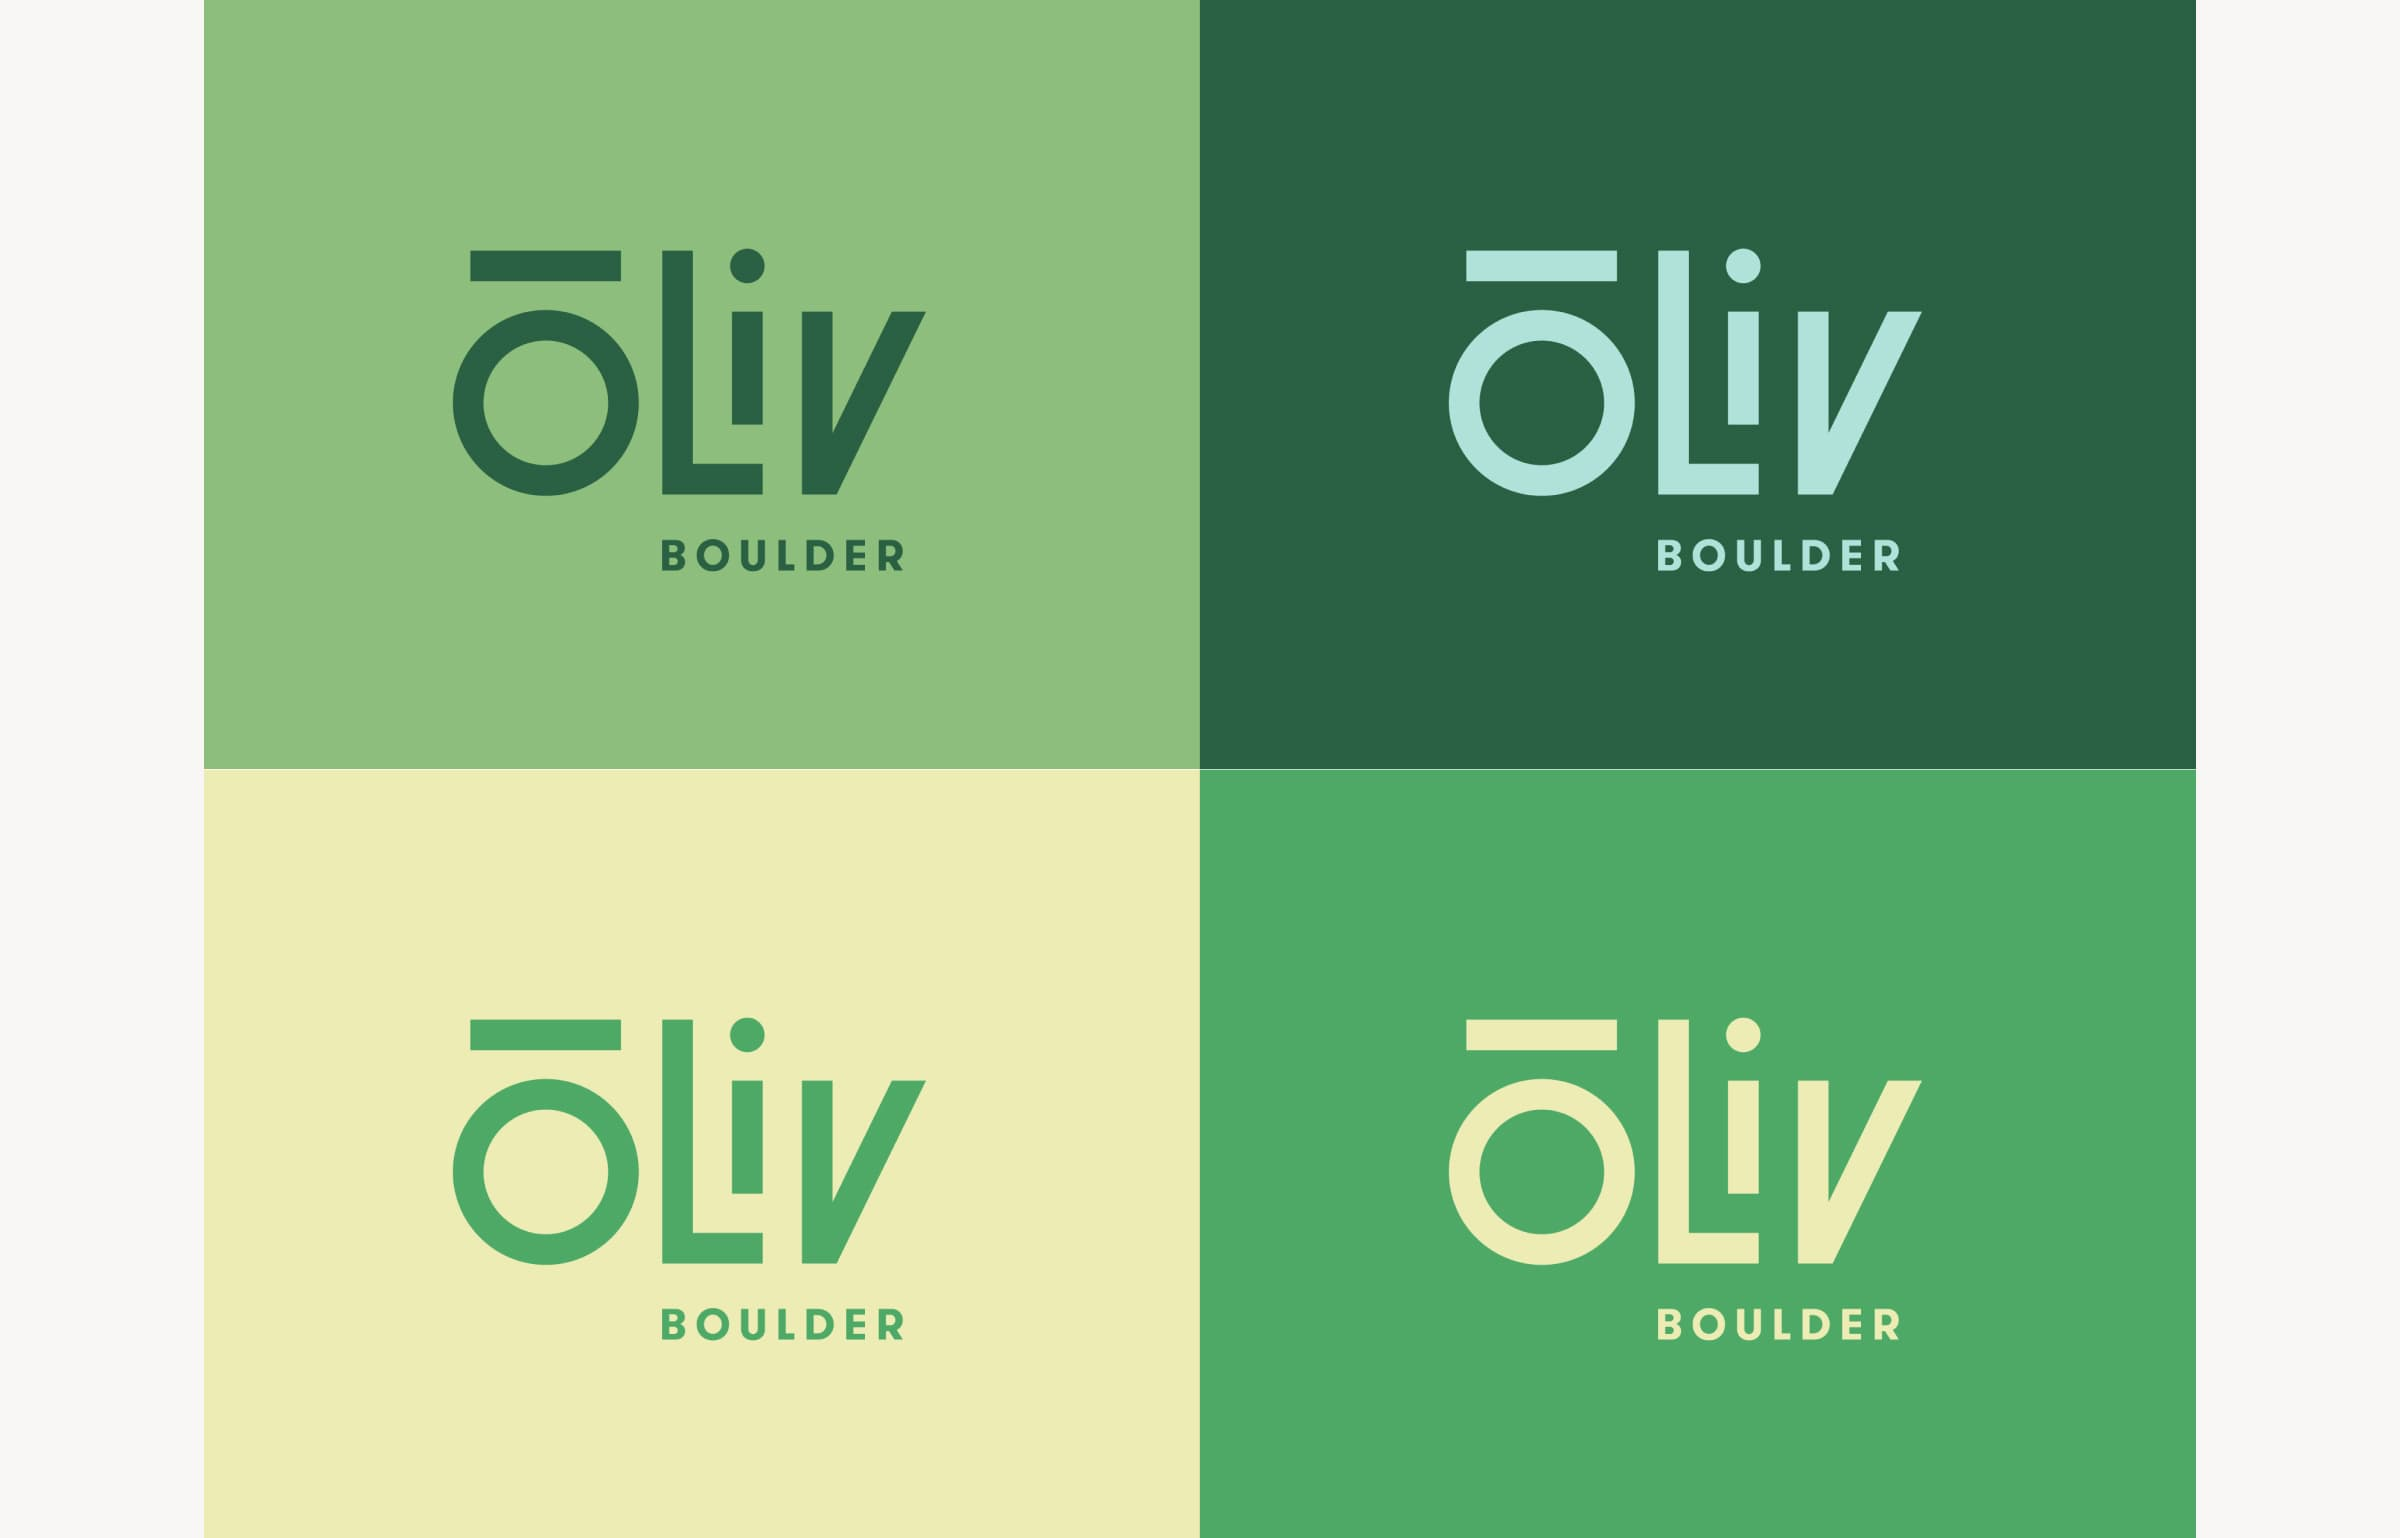 A image showing how ōLiv's logo and color scheme is localized for the Boulder, Colorado property.